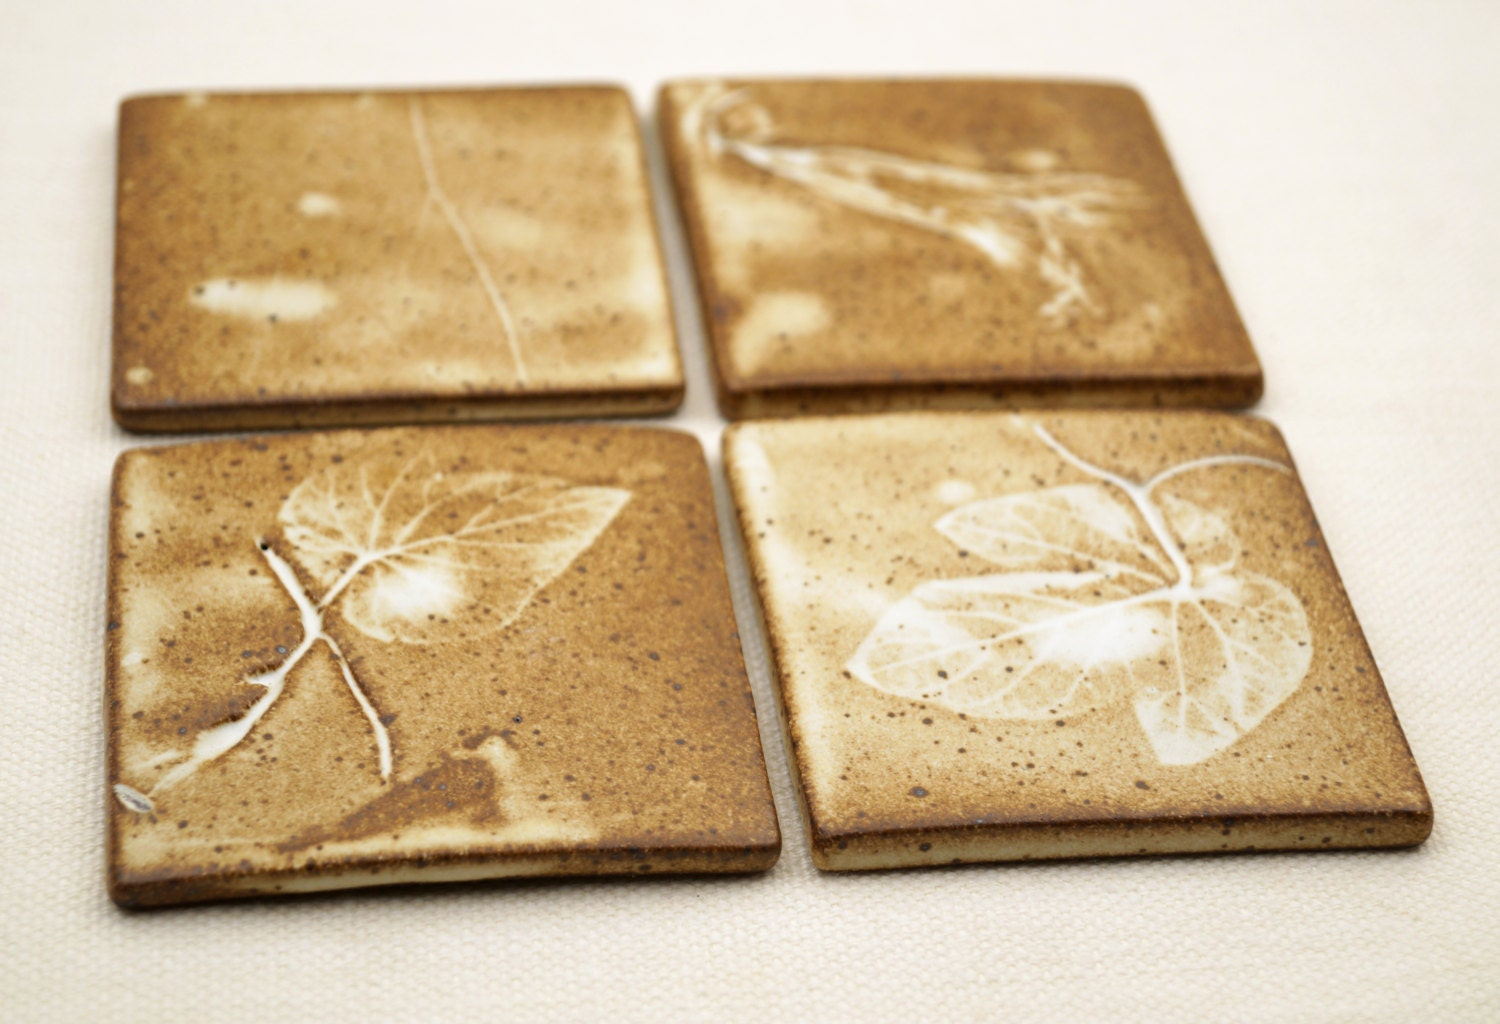 Ceramic hand made tilescoasters set of 4 one of a kind ceramic ceramic hand made tilescoasters set of 4 one of a kind ceramic tiles real greap leavesvine imprint rustic matte glaze unique gift idea dailygadgetfo Choice Image